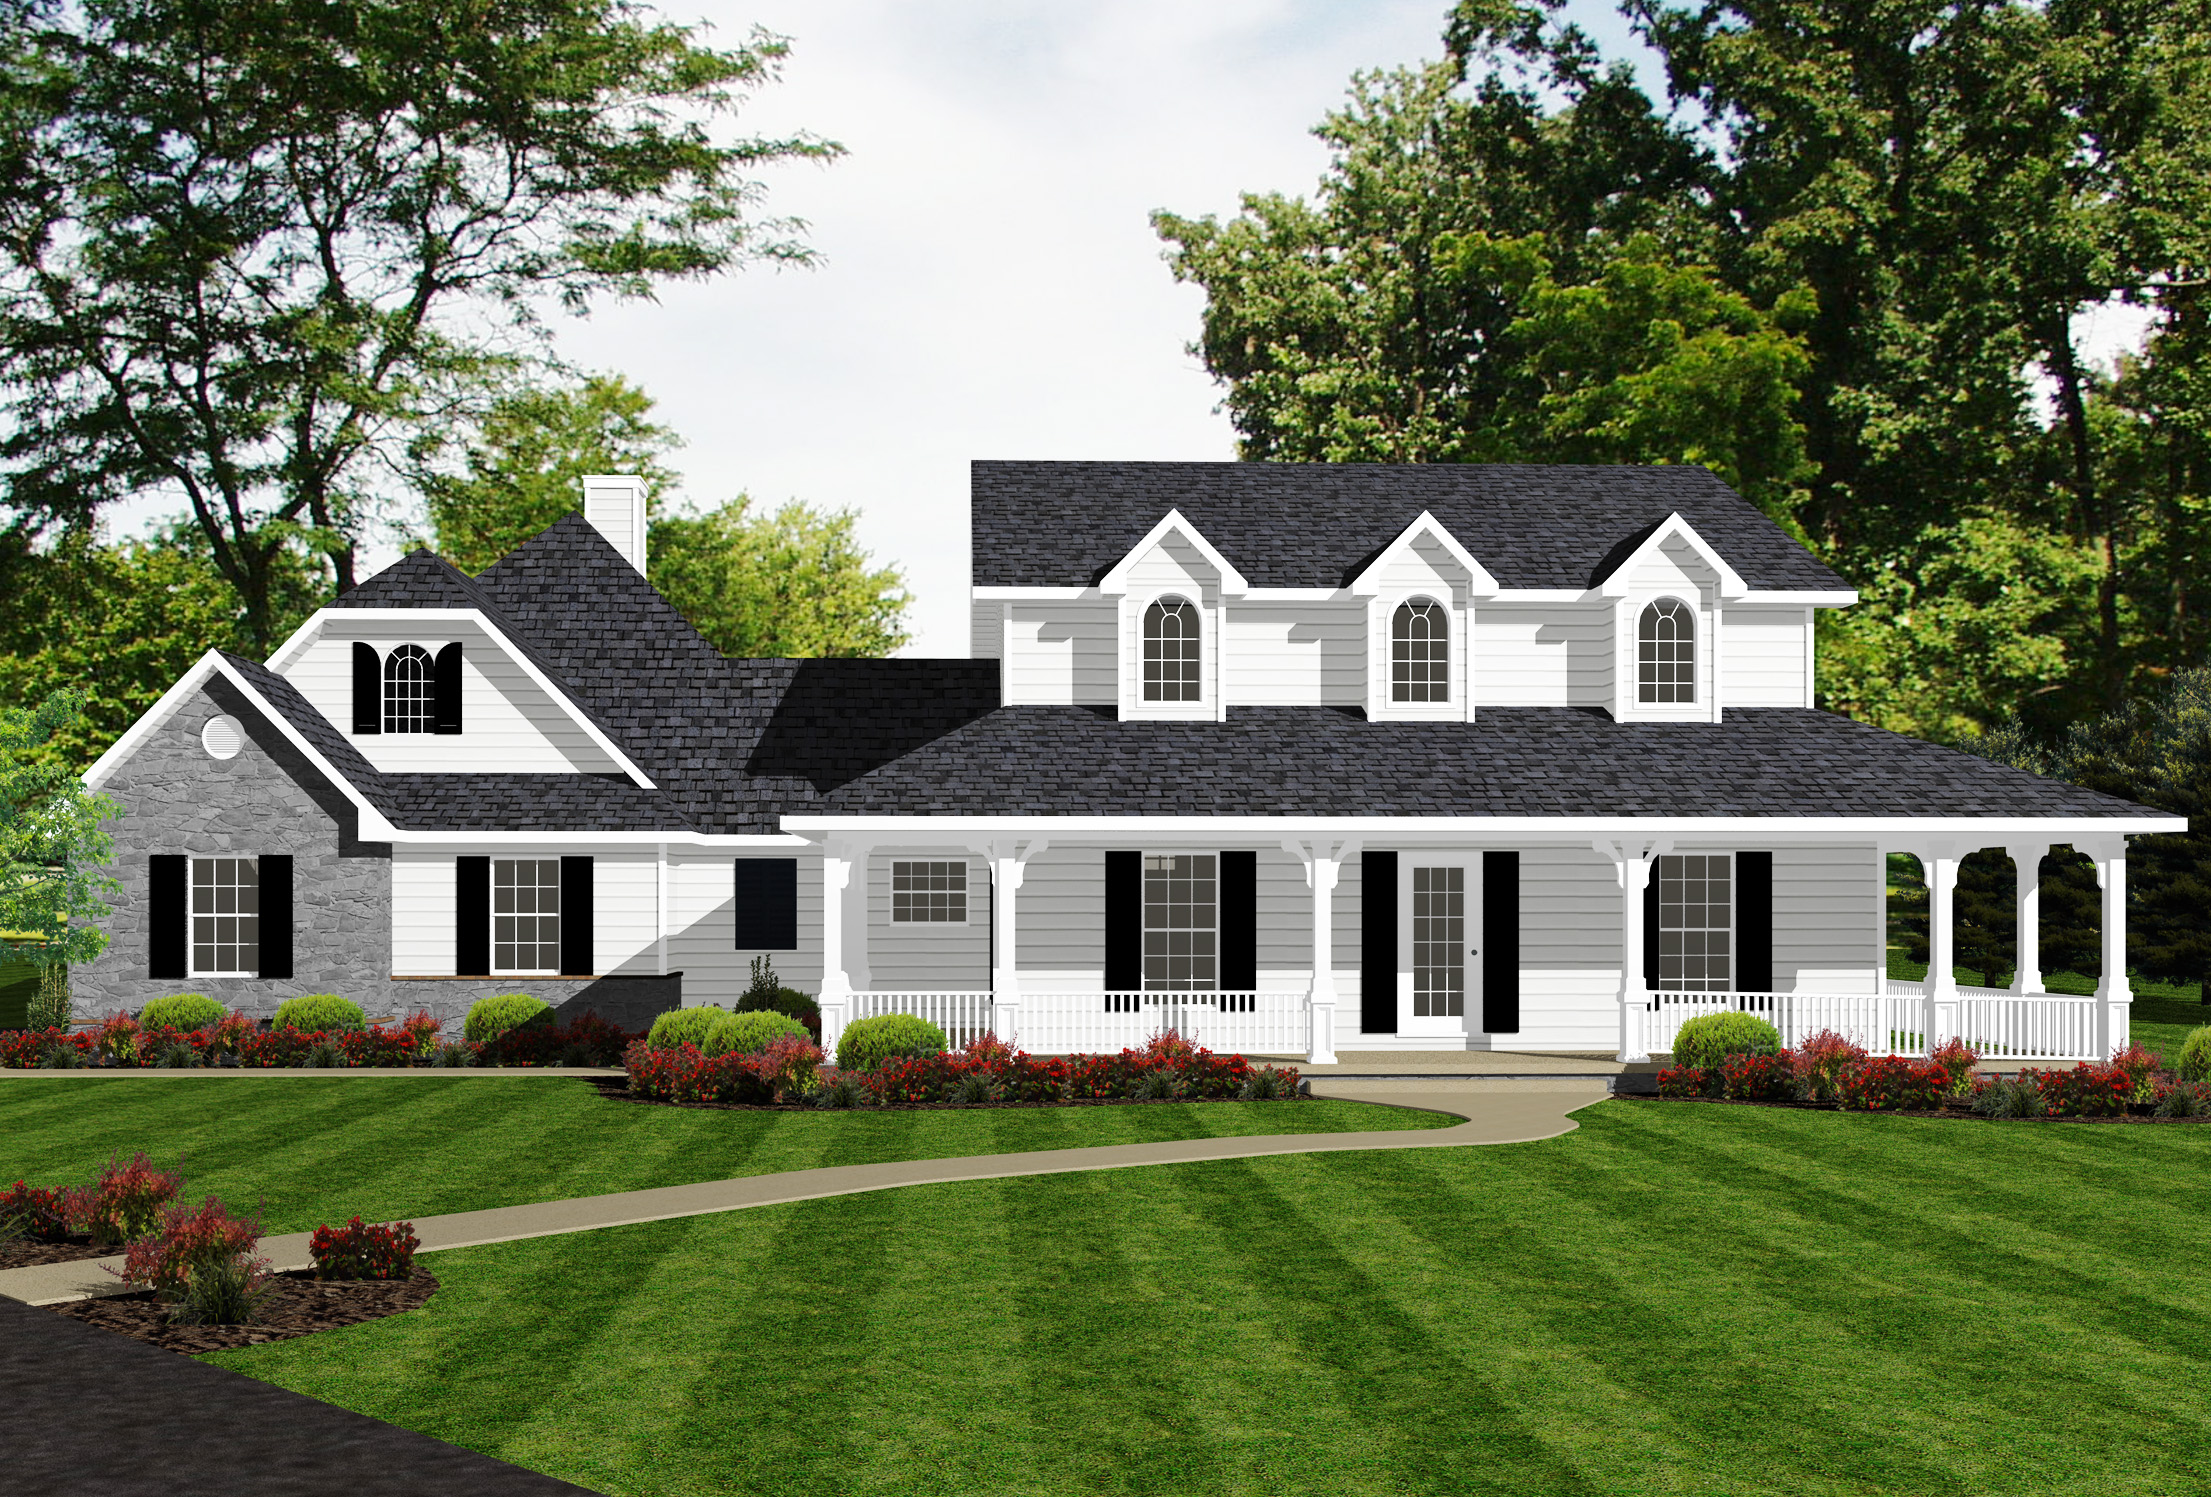 3484vl Ranch House Floor Plans With Office on ranch floor plans 4 bedroom, barn floor plans with office, ranch floor plans family room, craftsman house plans with office, small house plans with office,